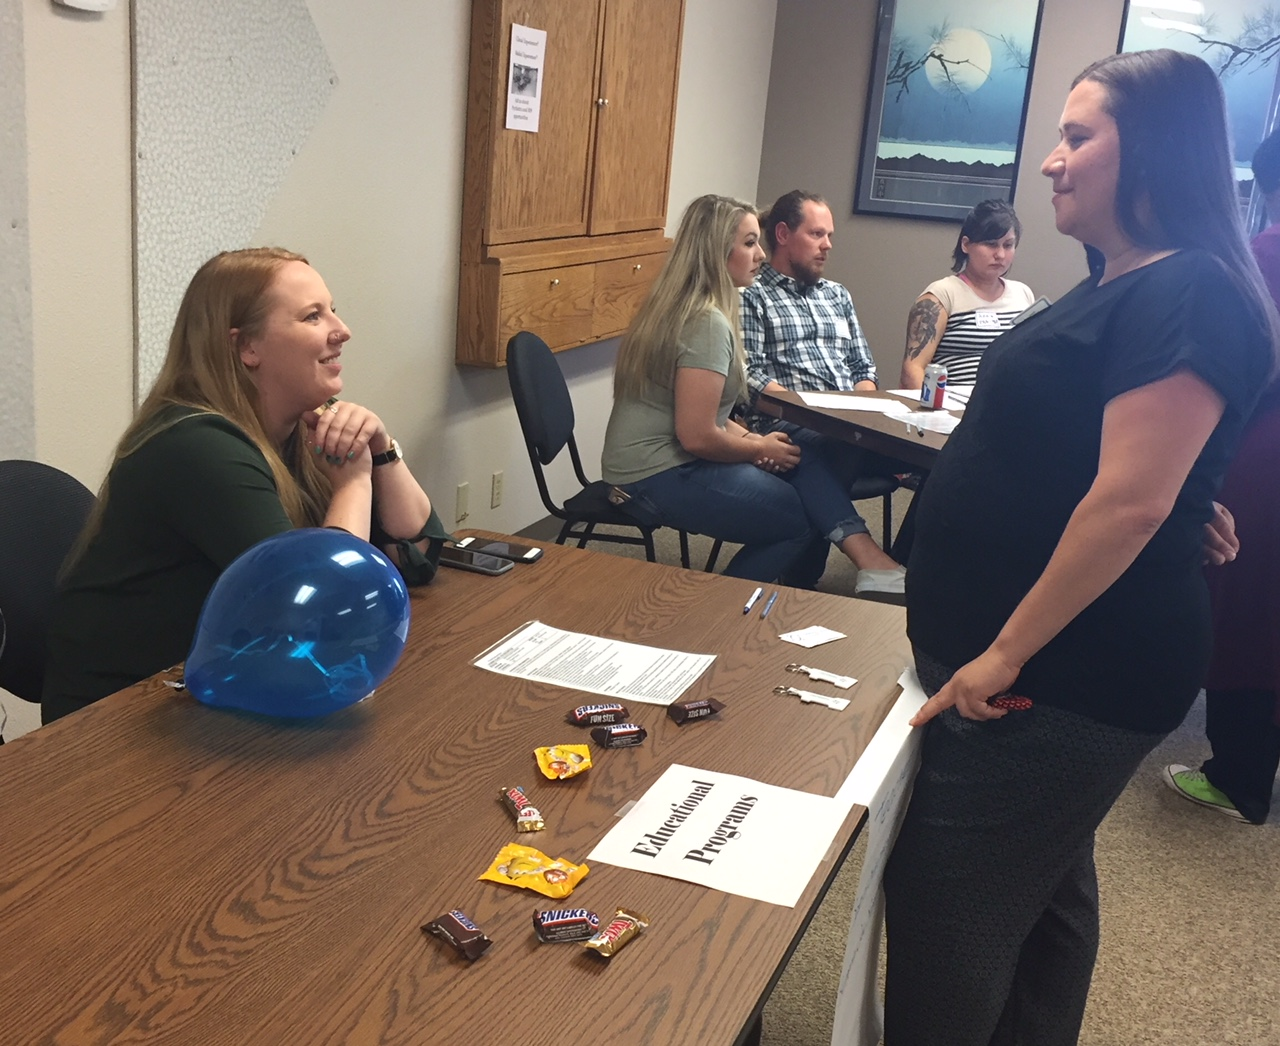 Riverfront School's Brianna Vincent talks with a job fair attendee at the 2018 Looking Glass job fair held at the Administrative offices on Thursday, June 7, 2018.